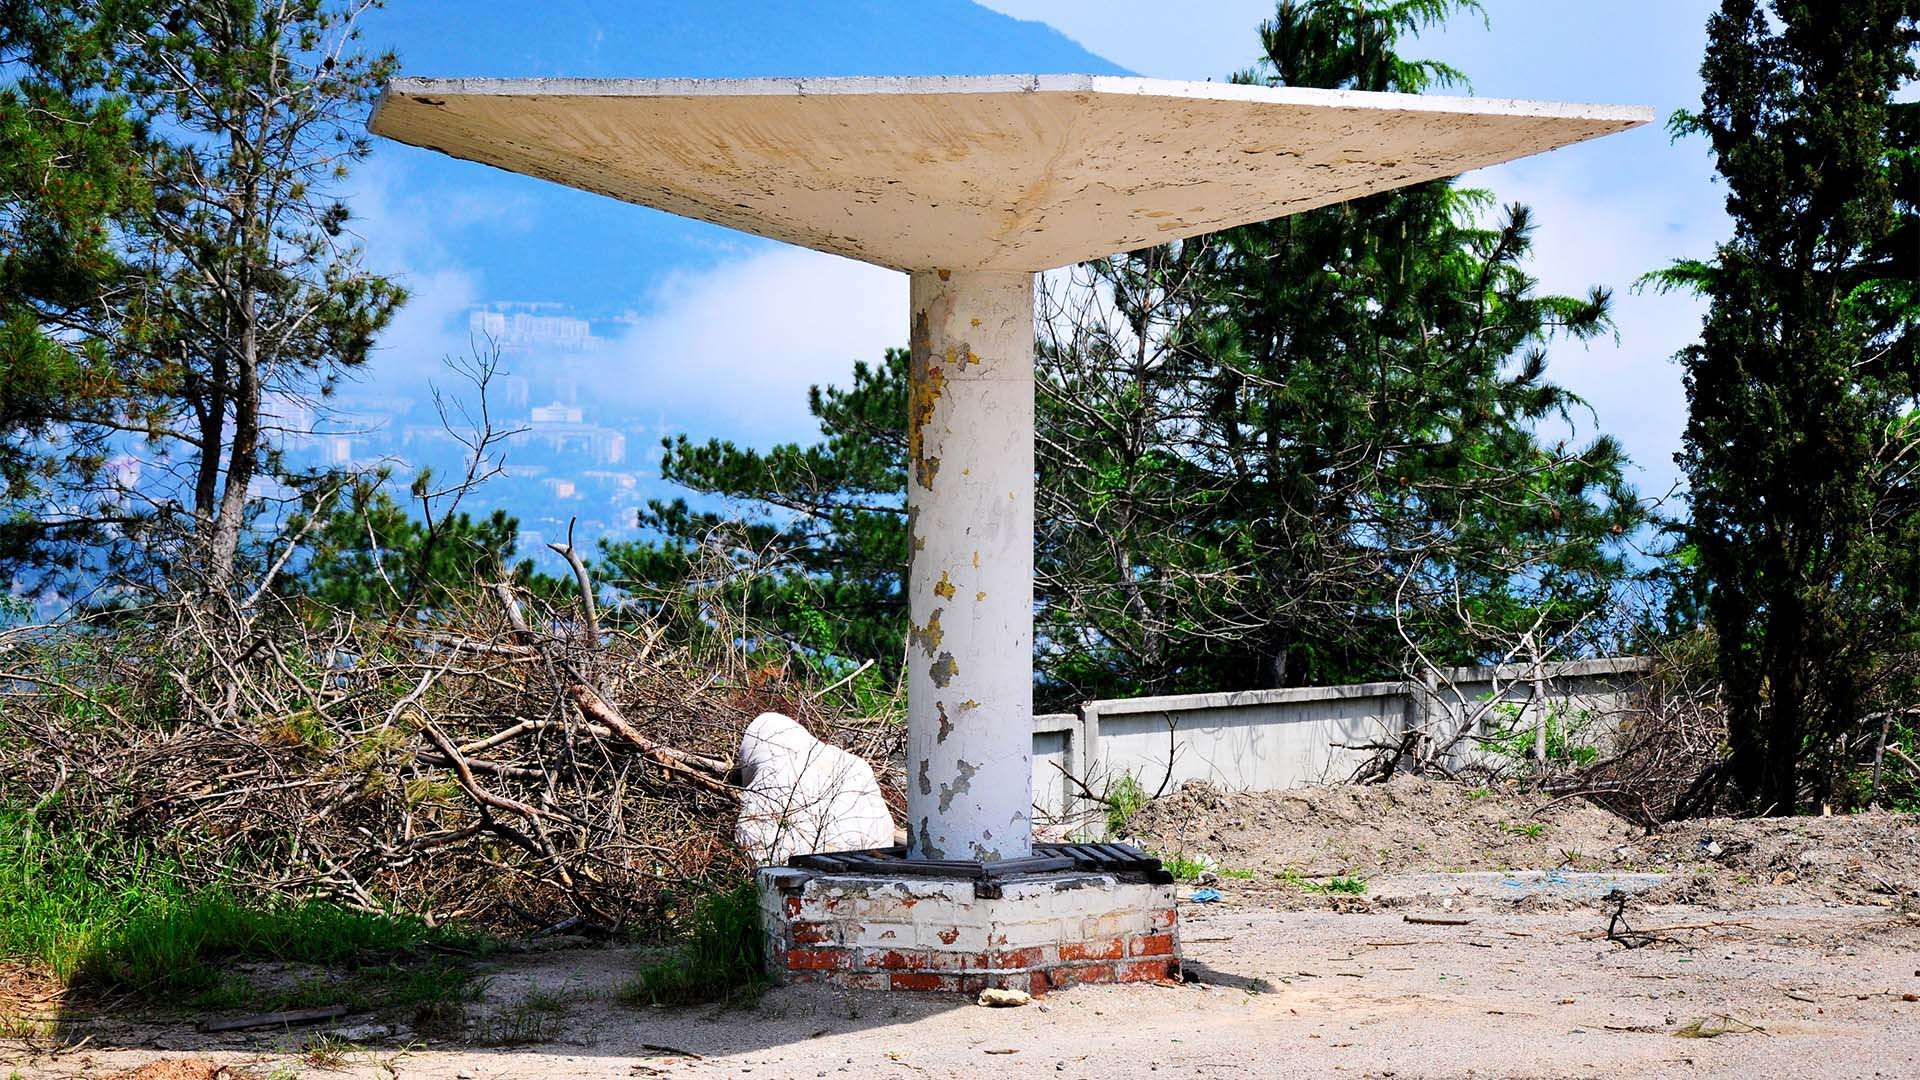 Hillside bus shelter in Crimea